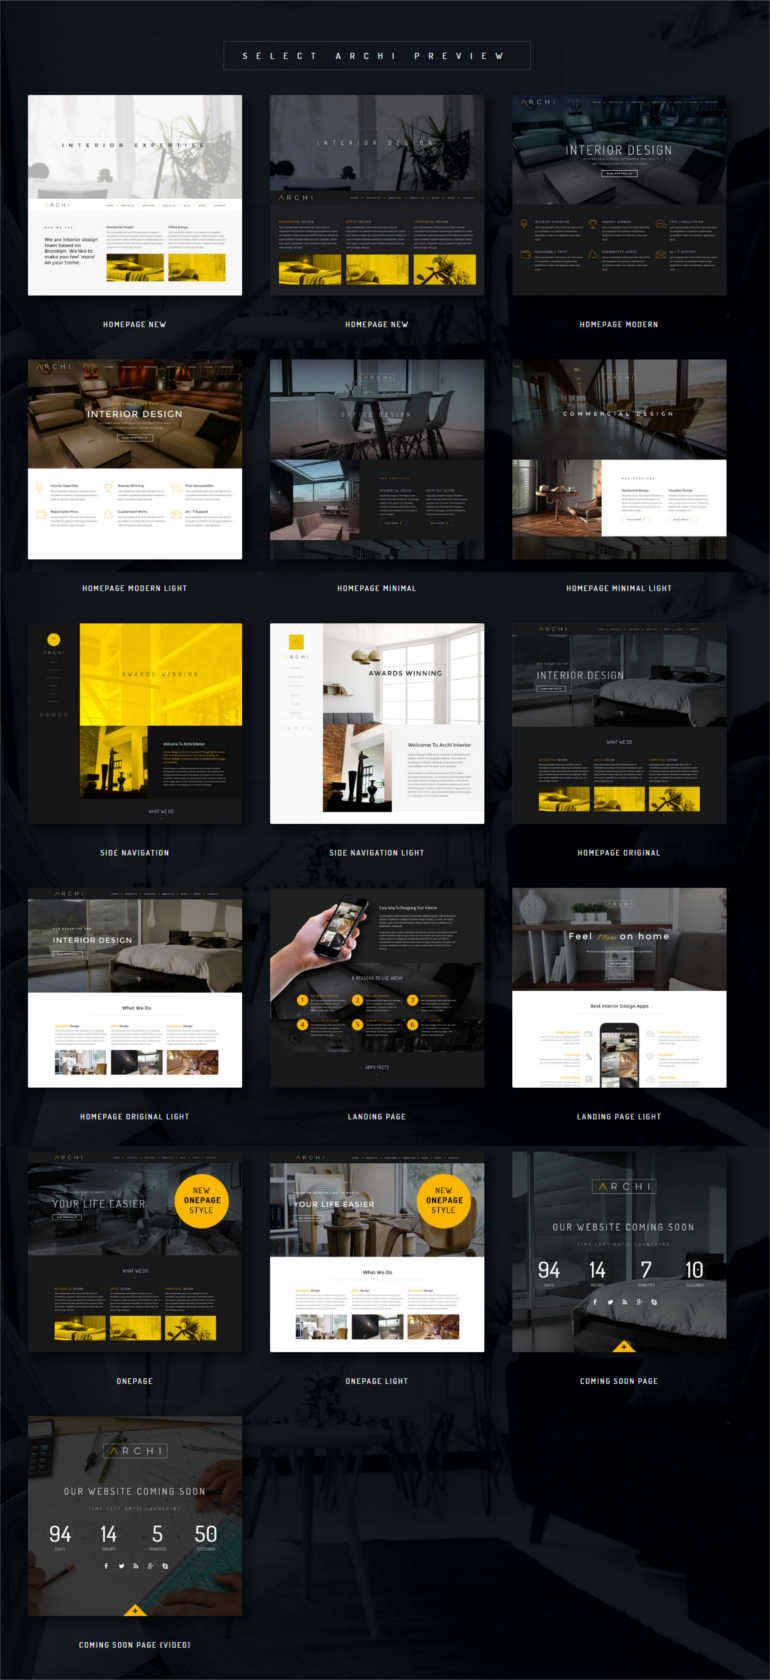 archi-interior-design-website-template